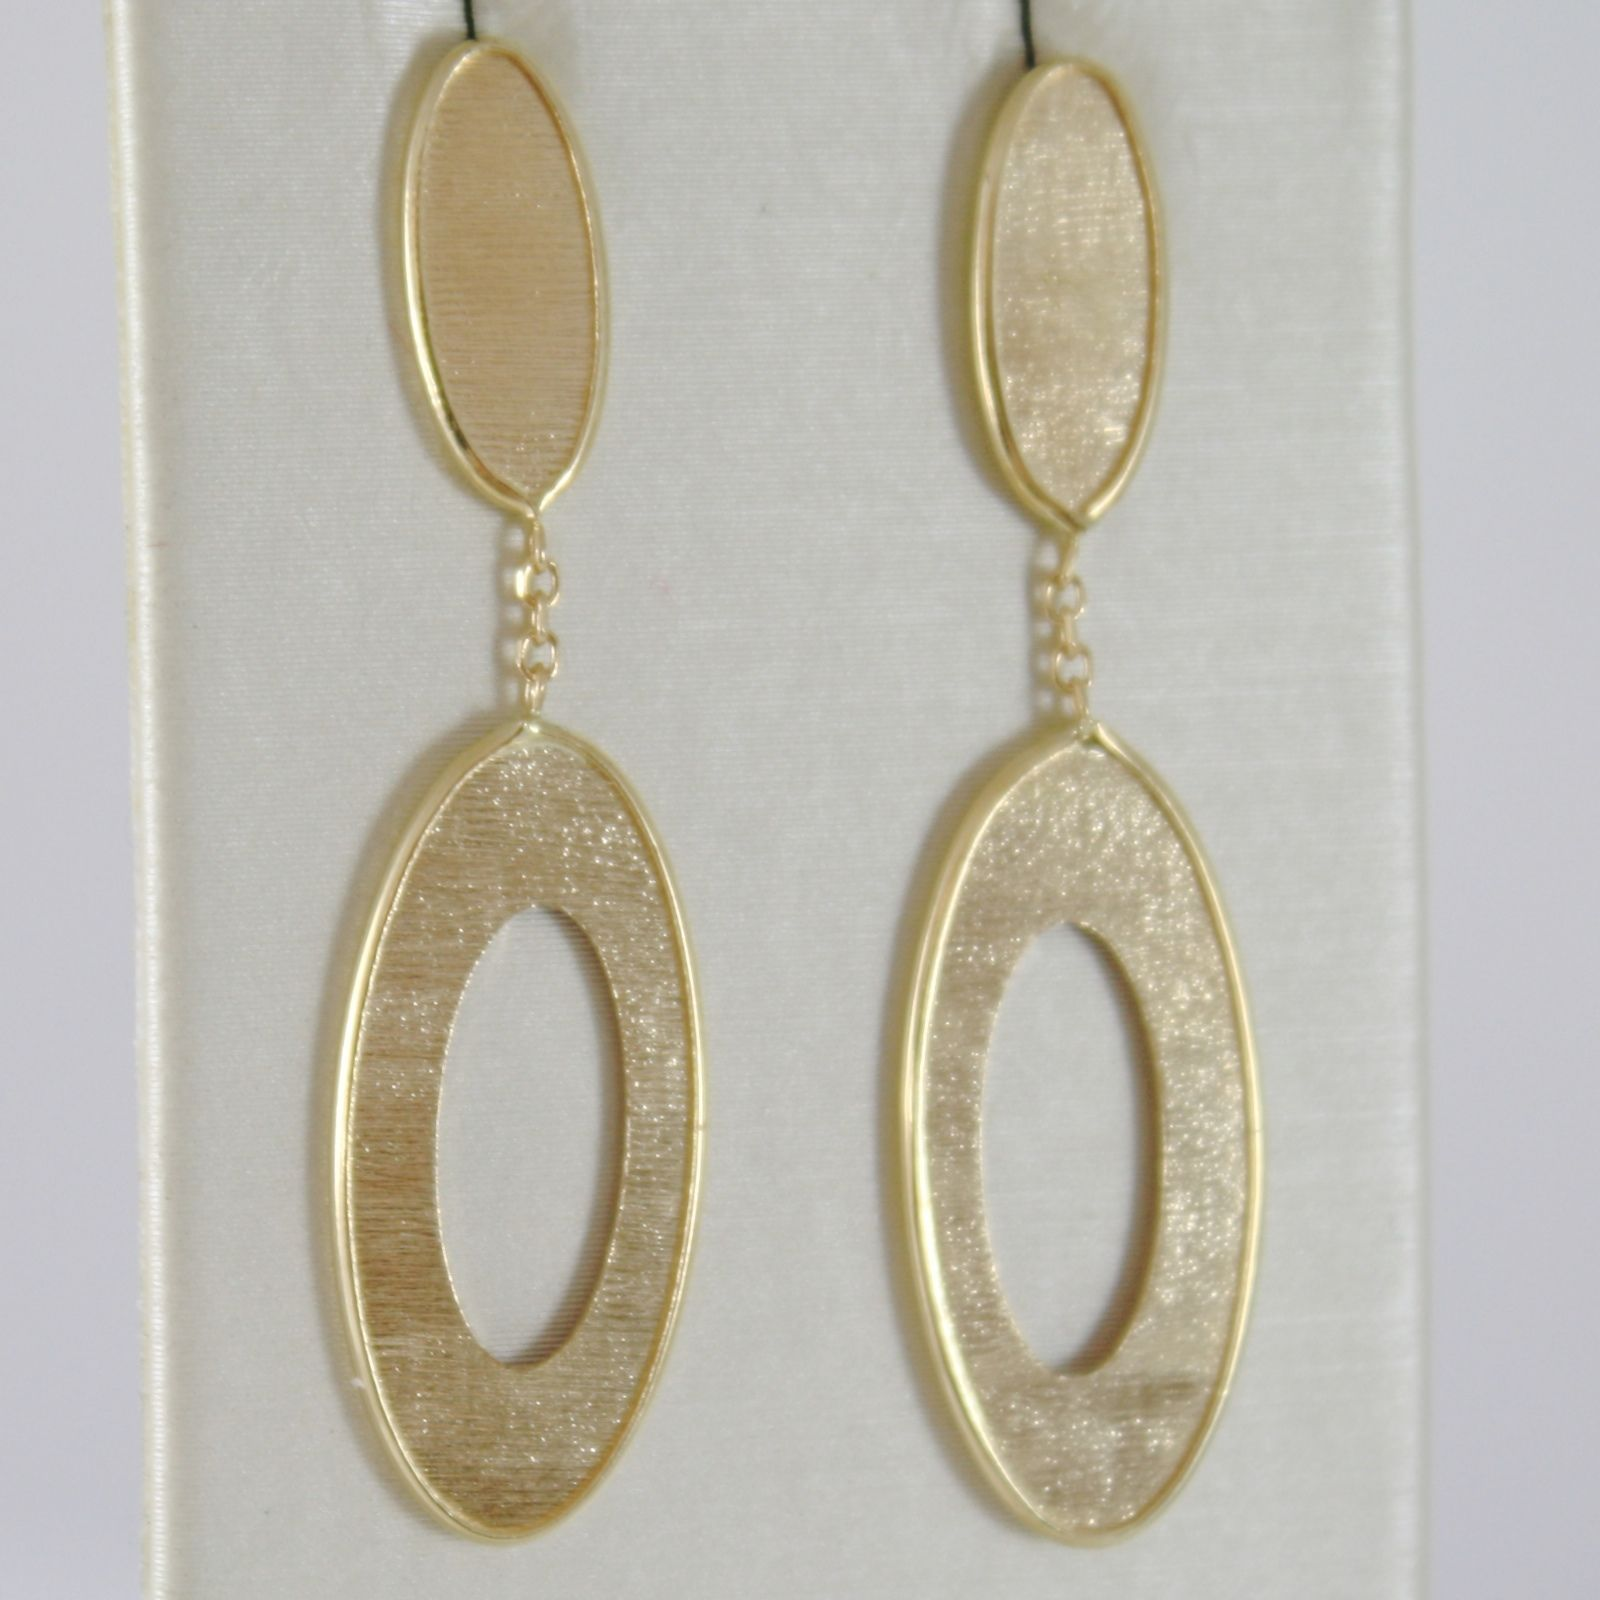 YELLOW GOLD EARRINGS 750 18K, HANGING, DOUBLE OVAL STRIPED, LENGTH 4 CM